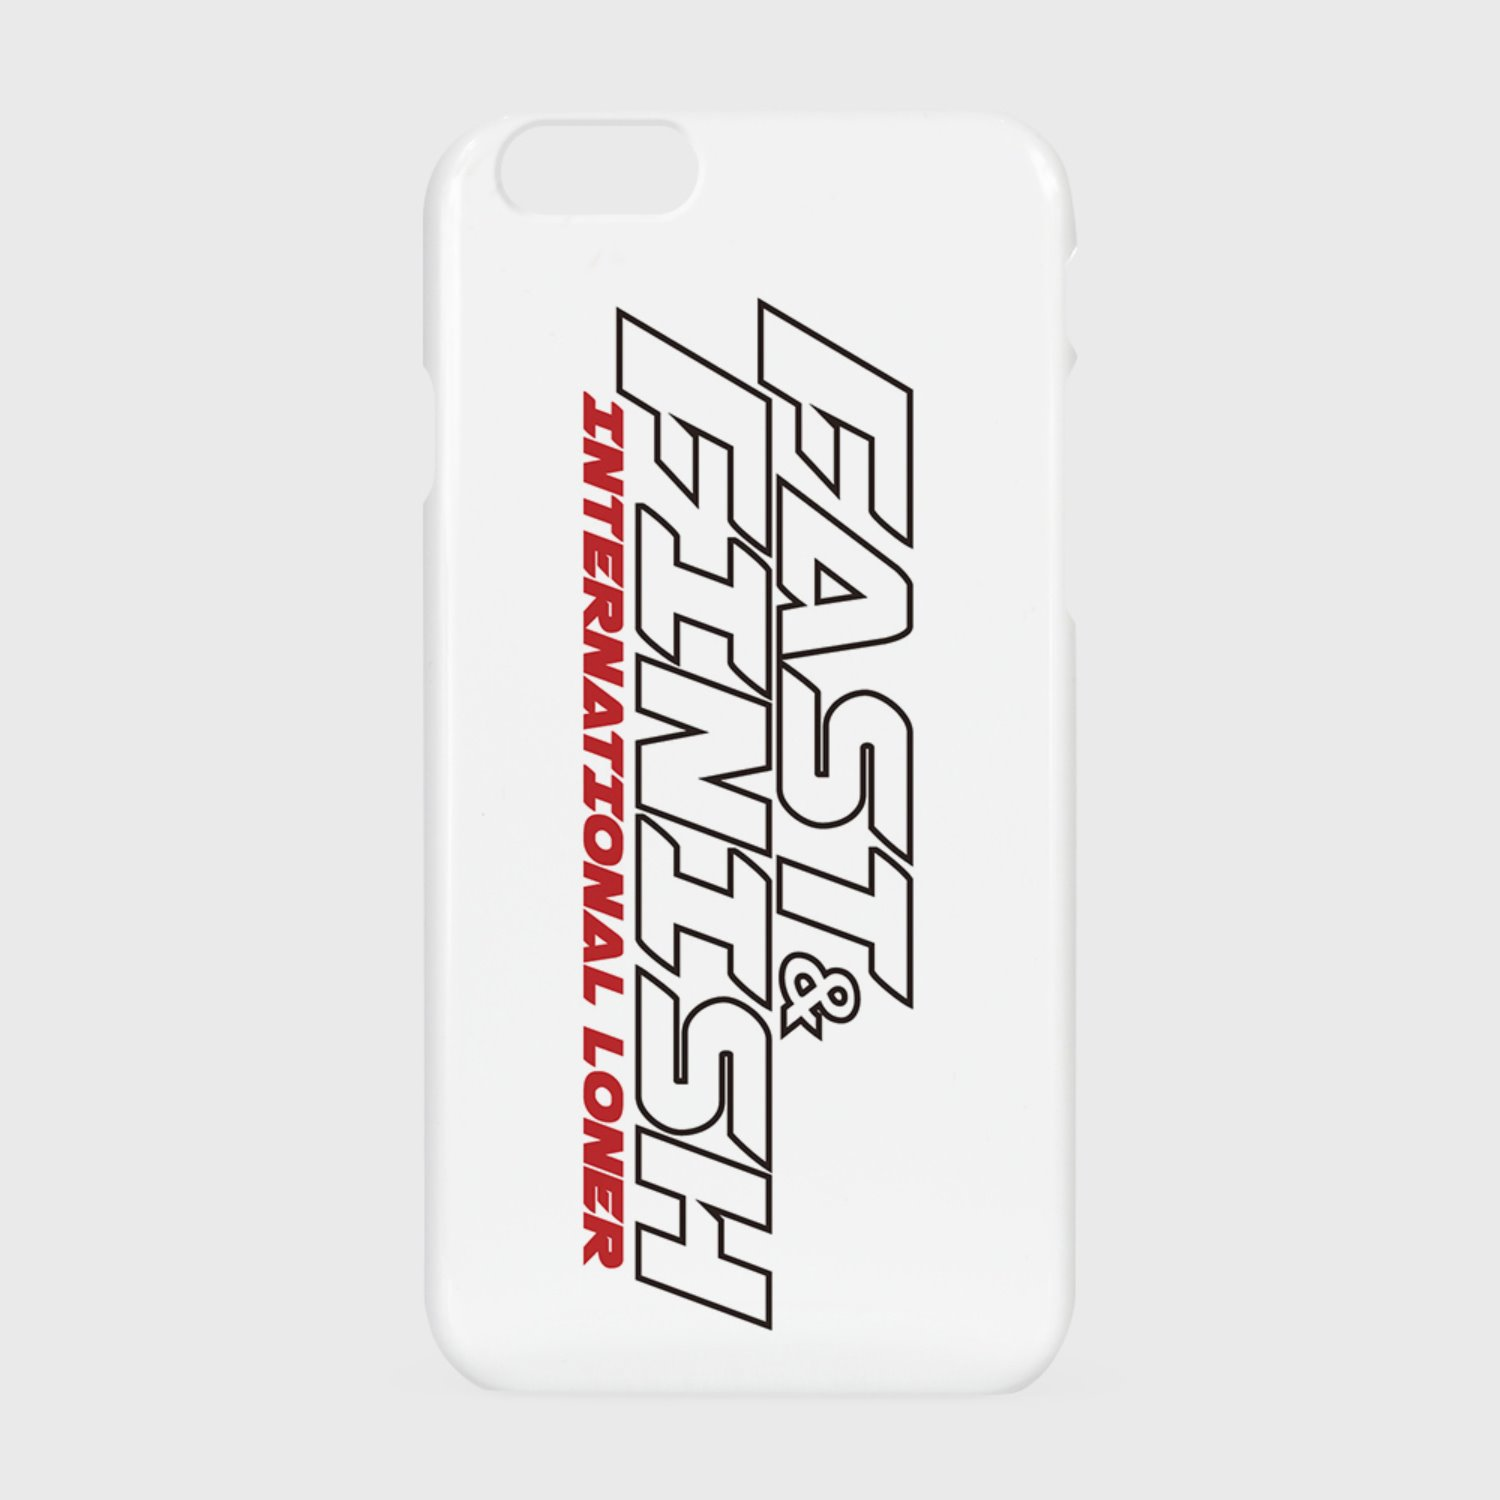 Fast and finish case-white (기간한정 07.17 - 07.23)